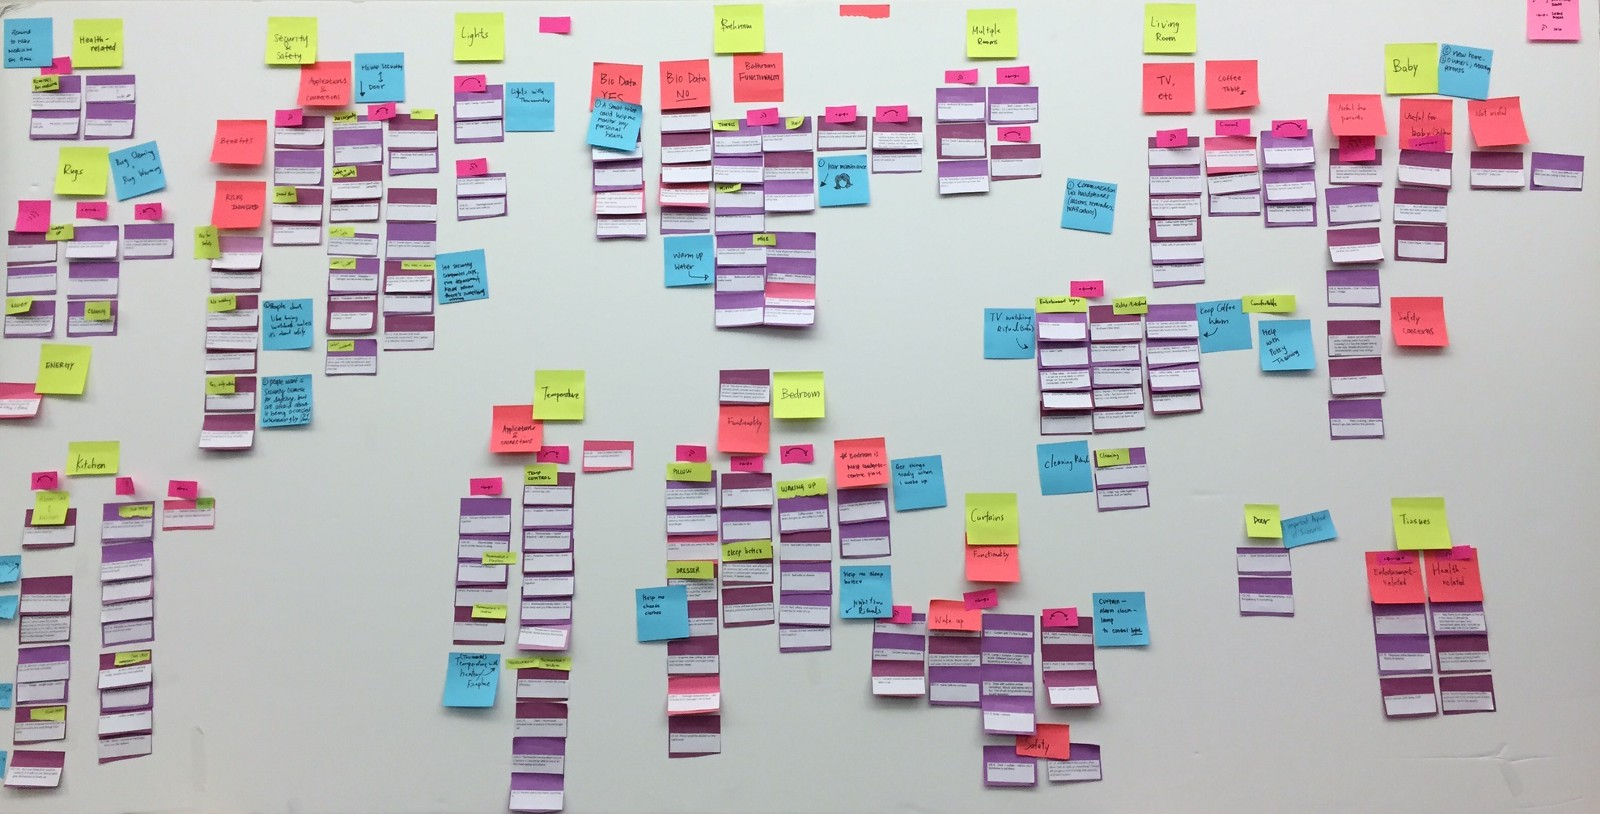 Brainstorm ideas using affinity diagram technique with sticky notes